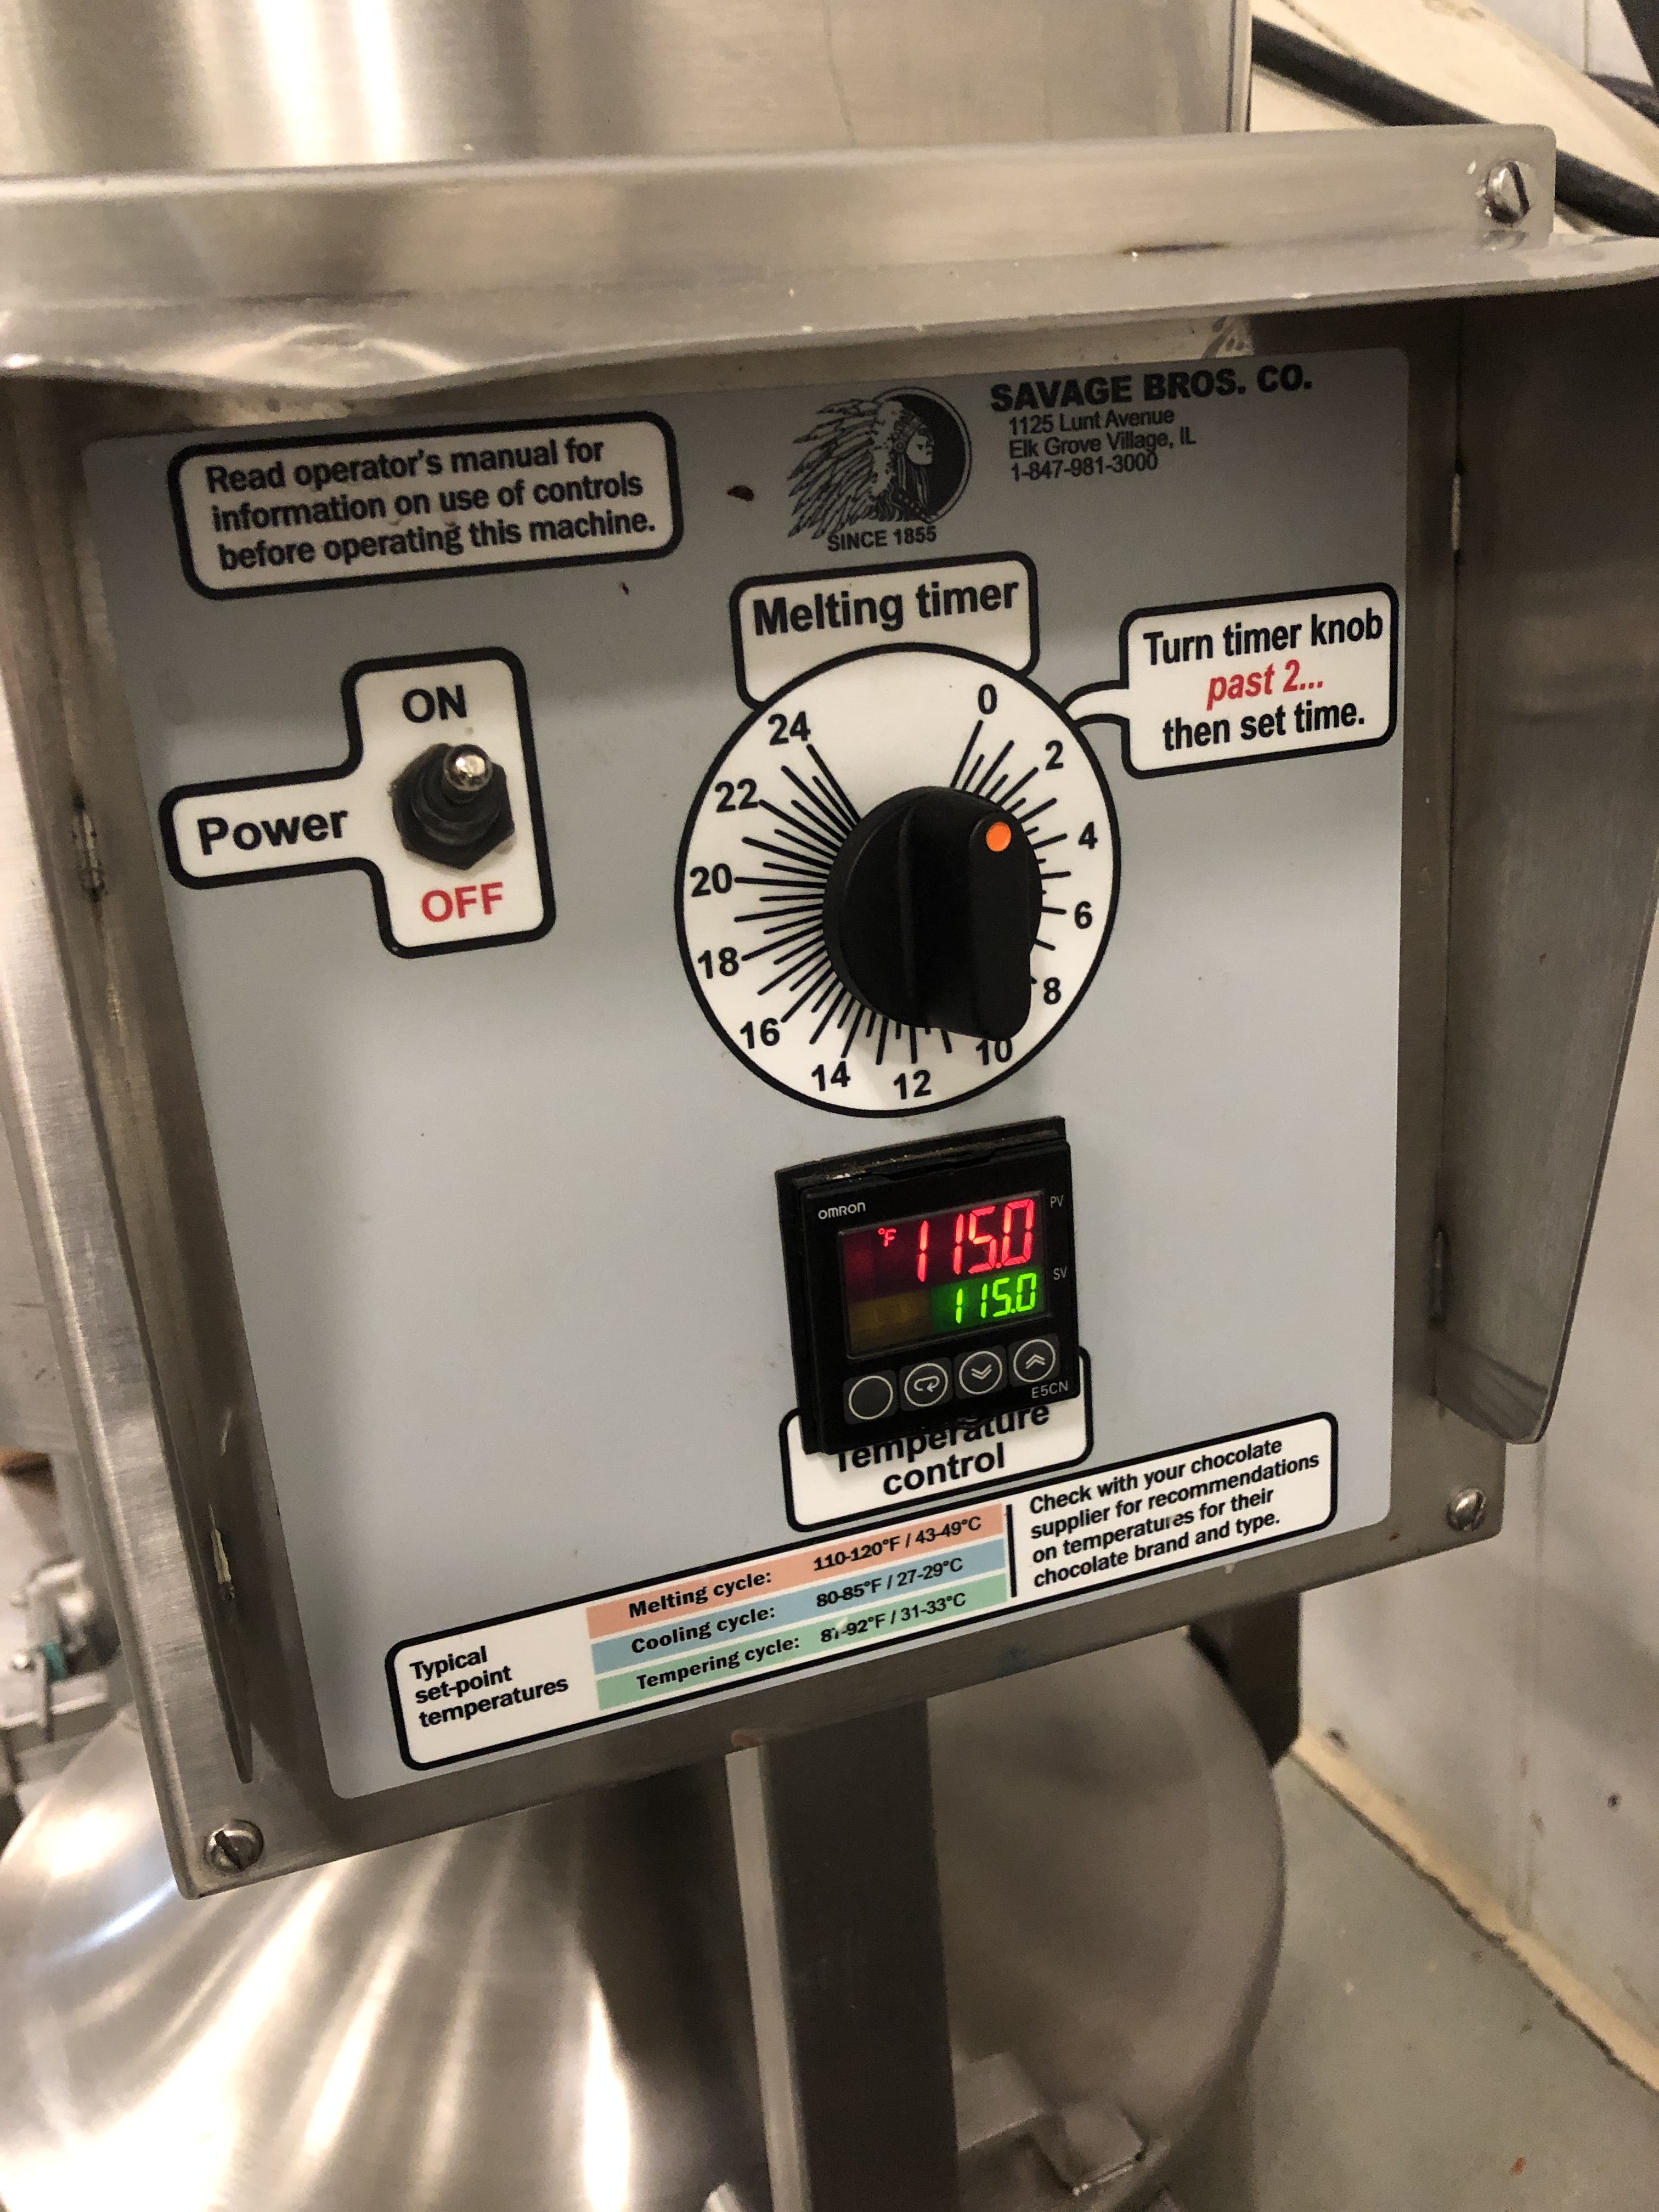 Lot 25 - Savage 125 lb/125 lb Stainless Steel Stack Chocolate Melter, model 0982-40. Jacketed and agitated,